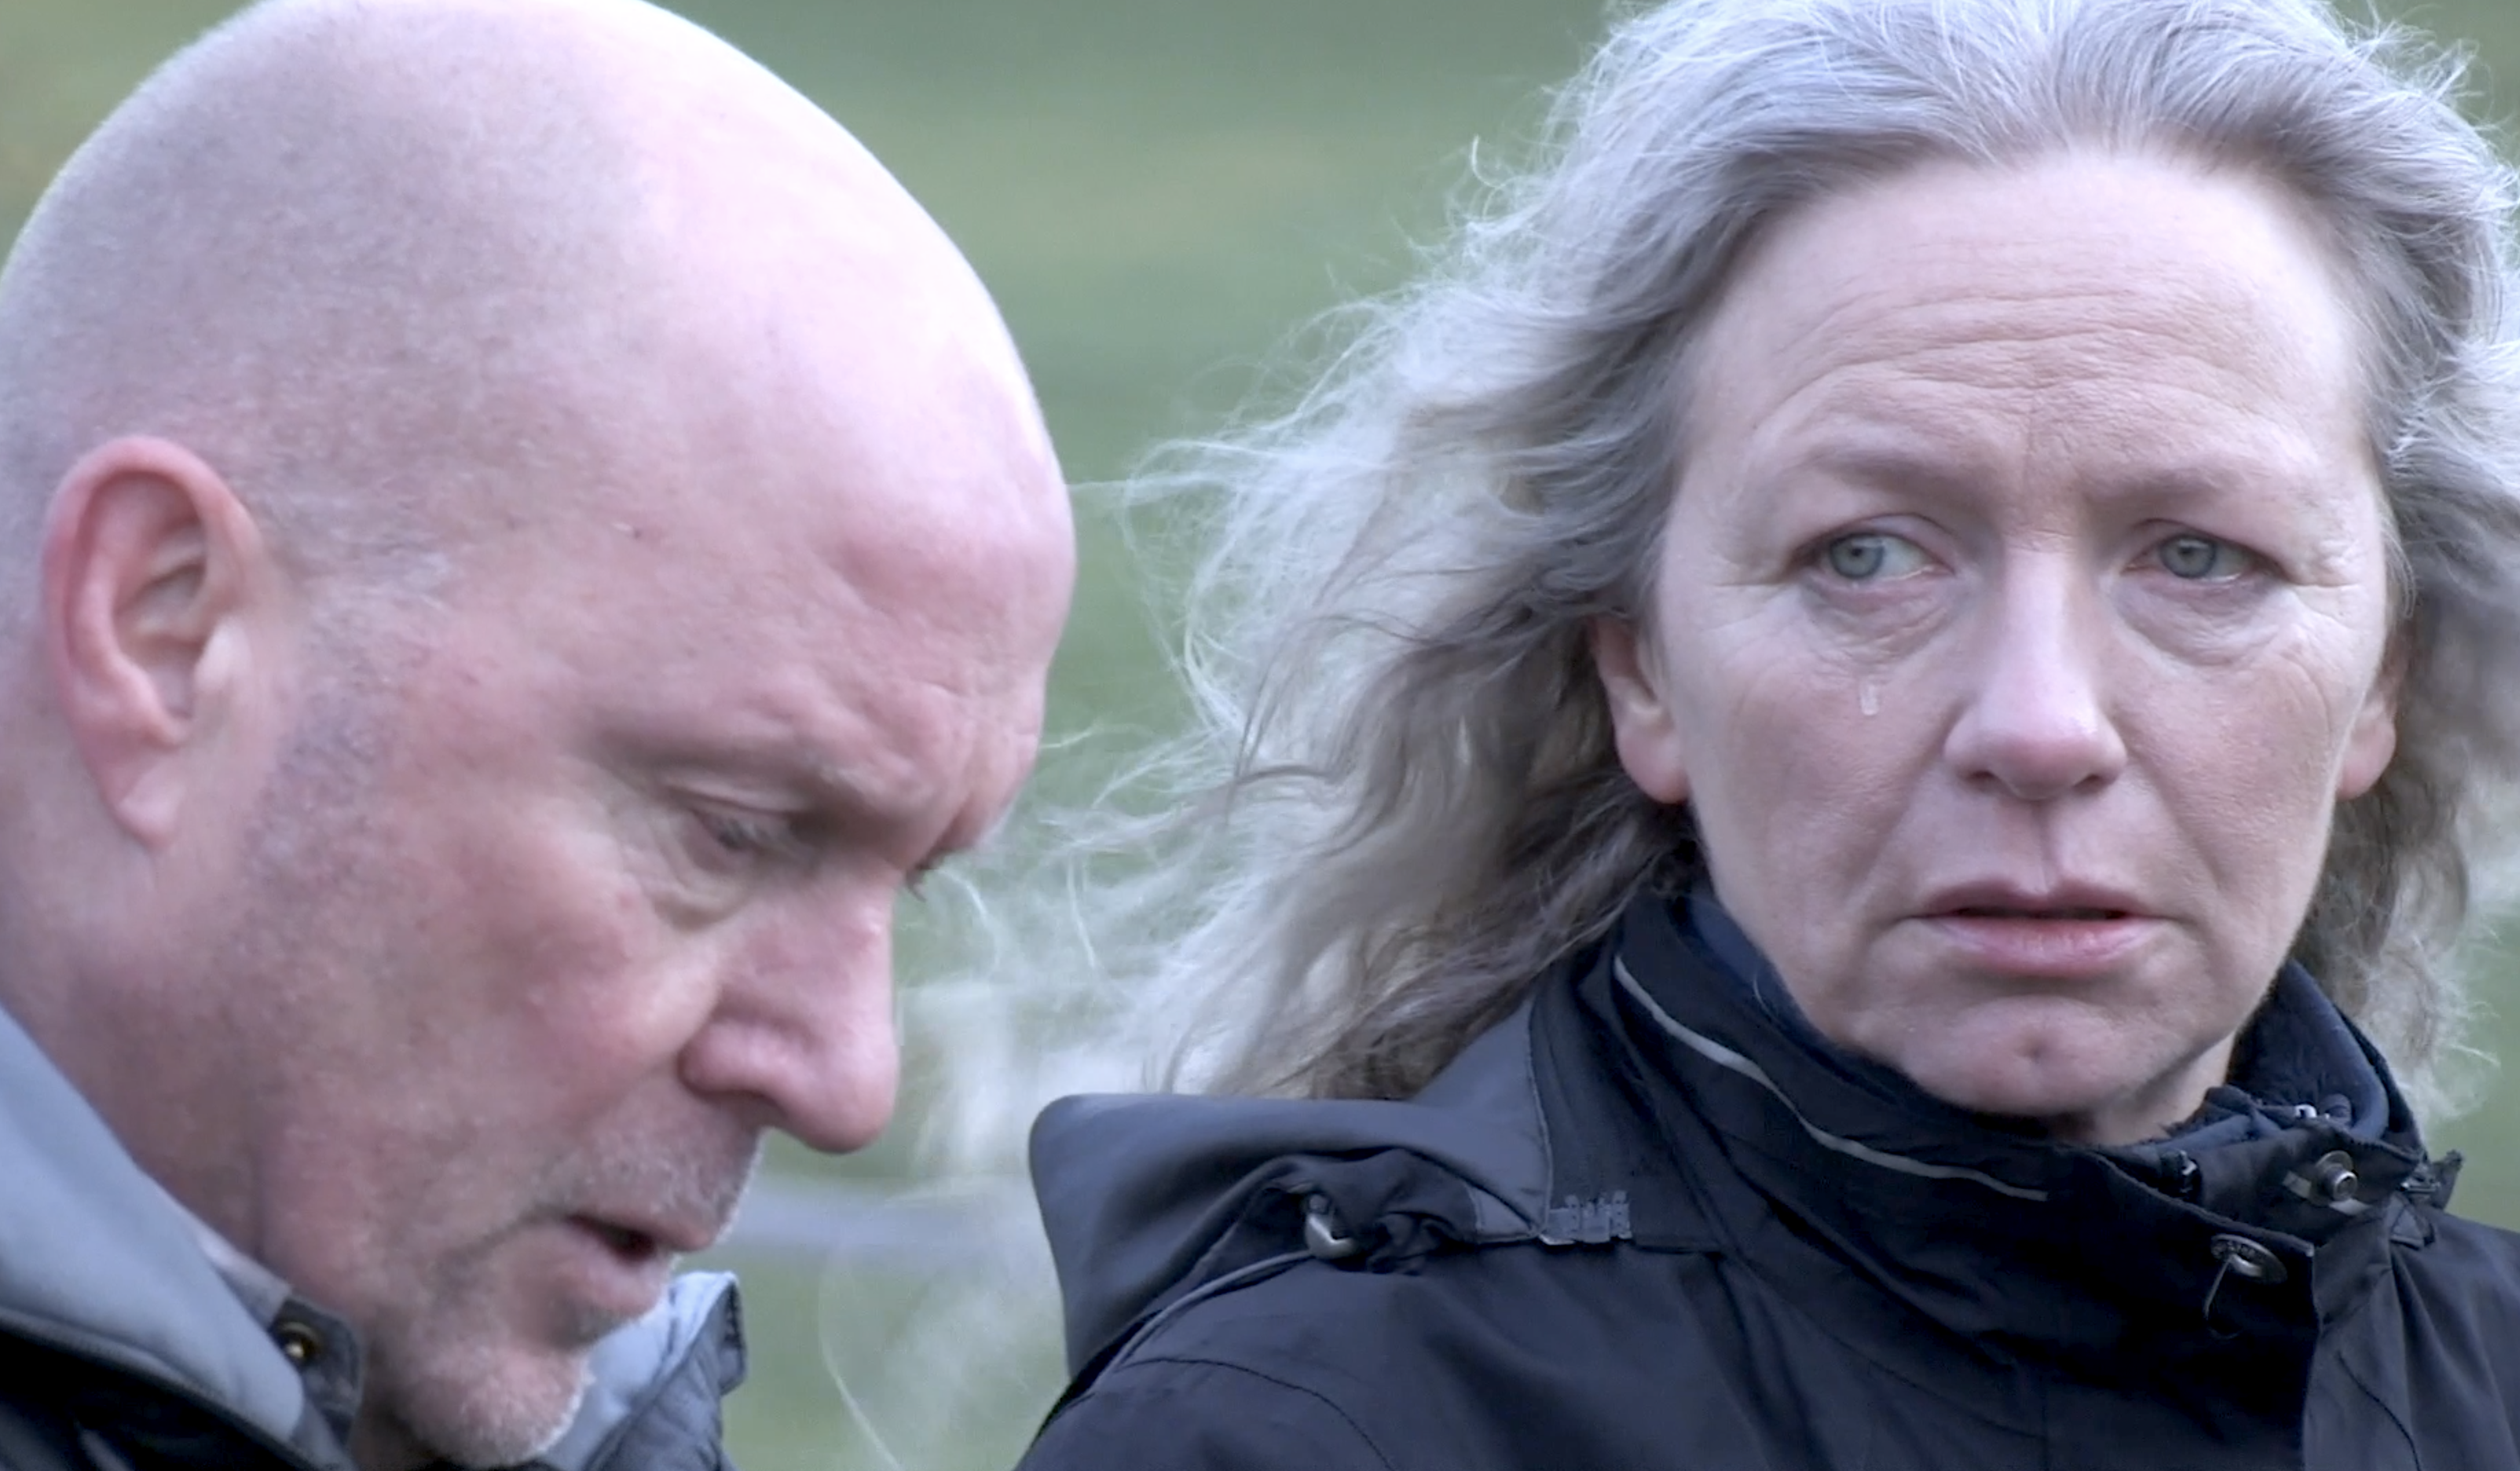 Left Behind, starring Dr Who actress Seylan Baxter and The Crews actor Joe Cassidy, tells the story of a mother and father as they struggle to deal with the loss of their son.